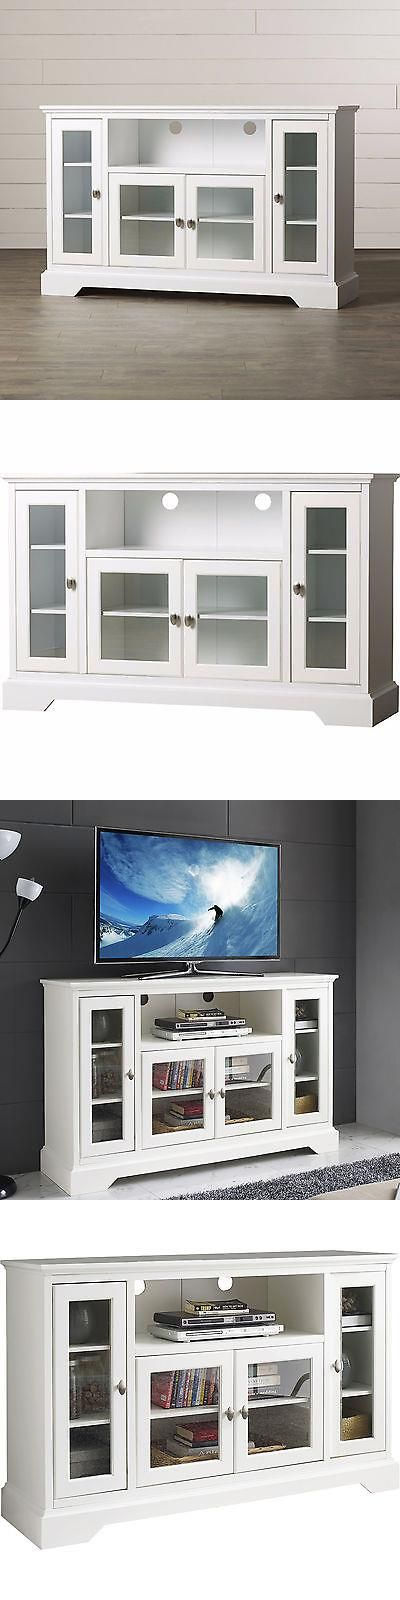 Entertainment Units, TV Stands: White Tv Stand Media Console Storage Home Entertainment Center Wood Furniture BUY IT NOW ONLY: $525.95 #priceabateEntertainmentUnitsTVStands OR #priceabate